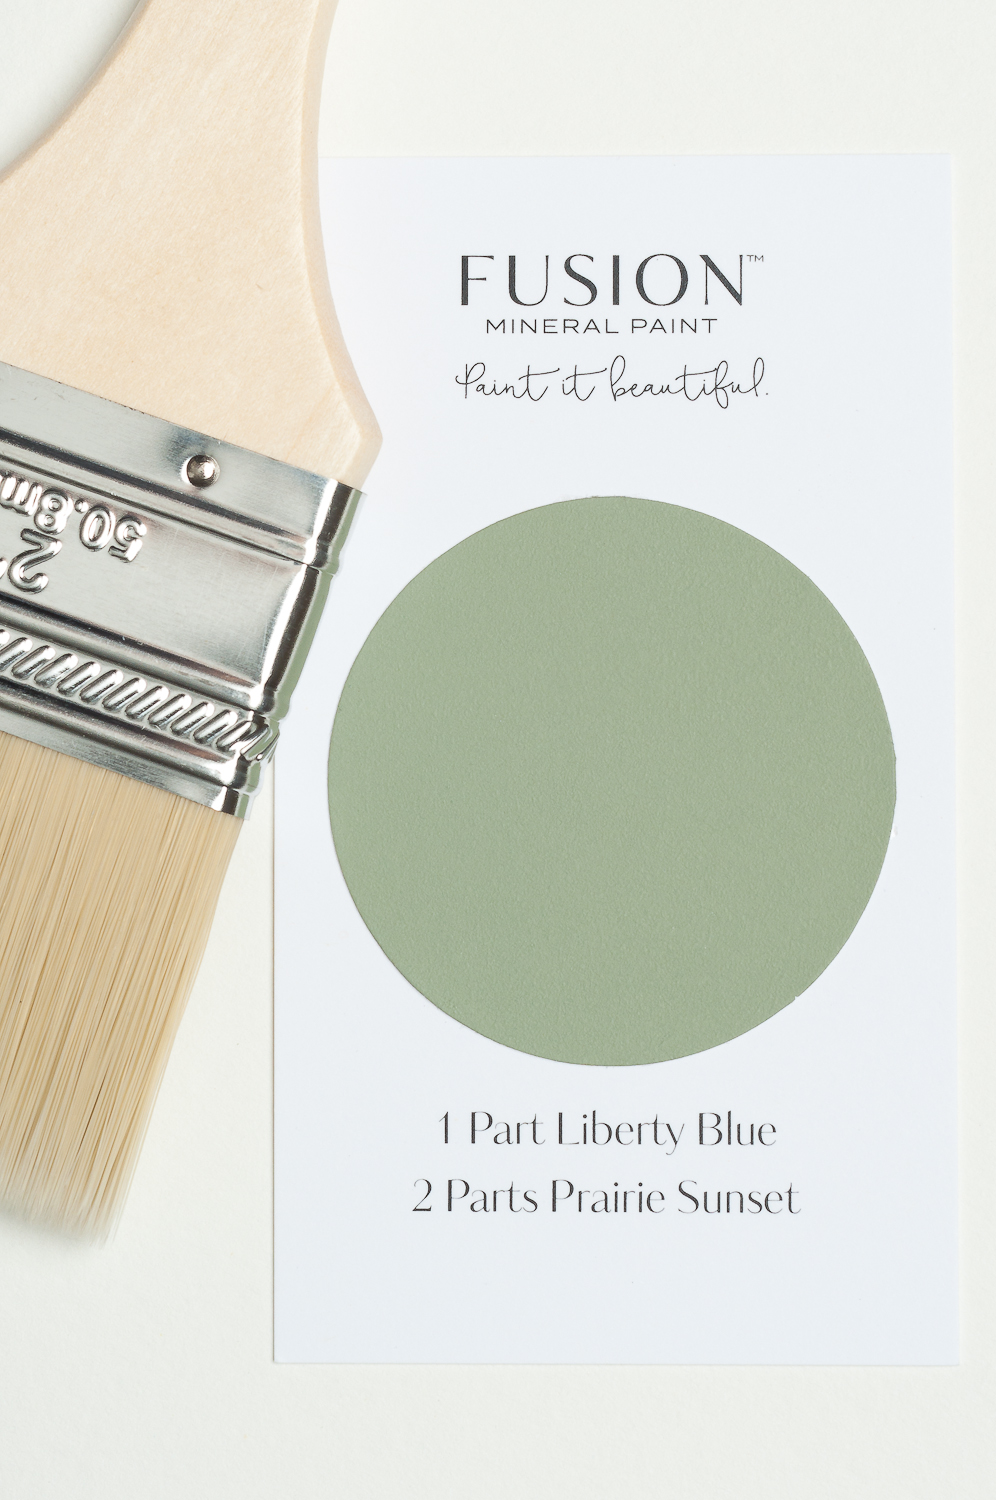 It's simple to mix Fusion Mineral Paint to create your own custom paint colours. This little recipe card shows you how. There are 32 recipes to choose from! You can see all the custom blend recipes on my website.